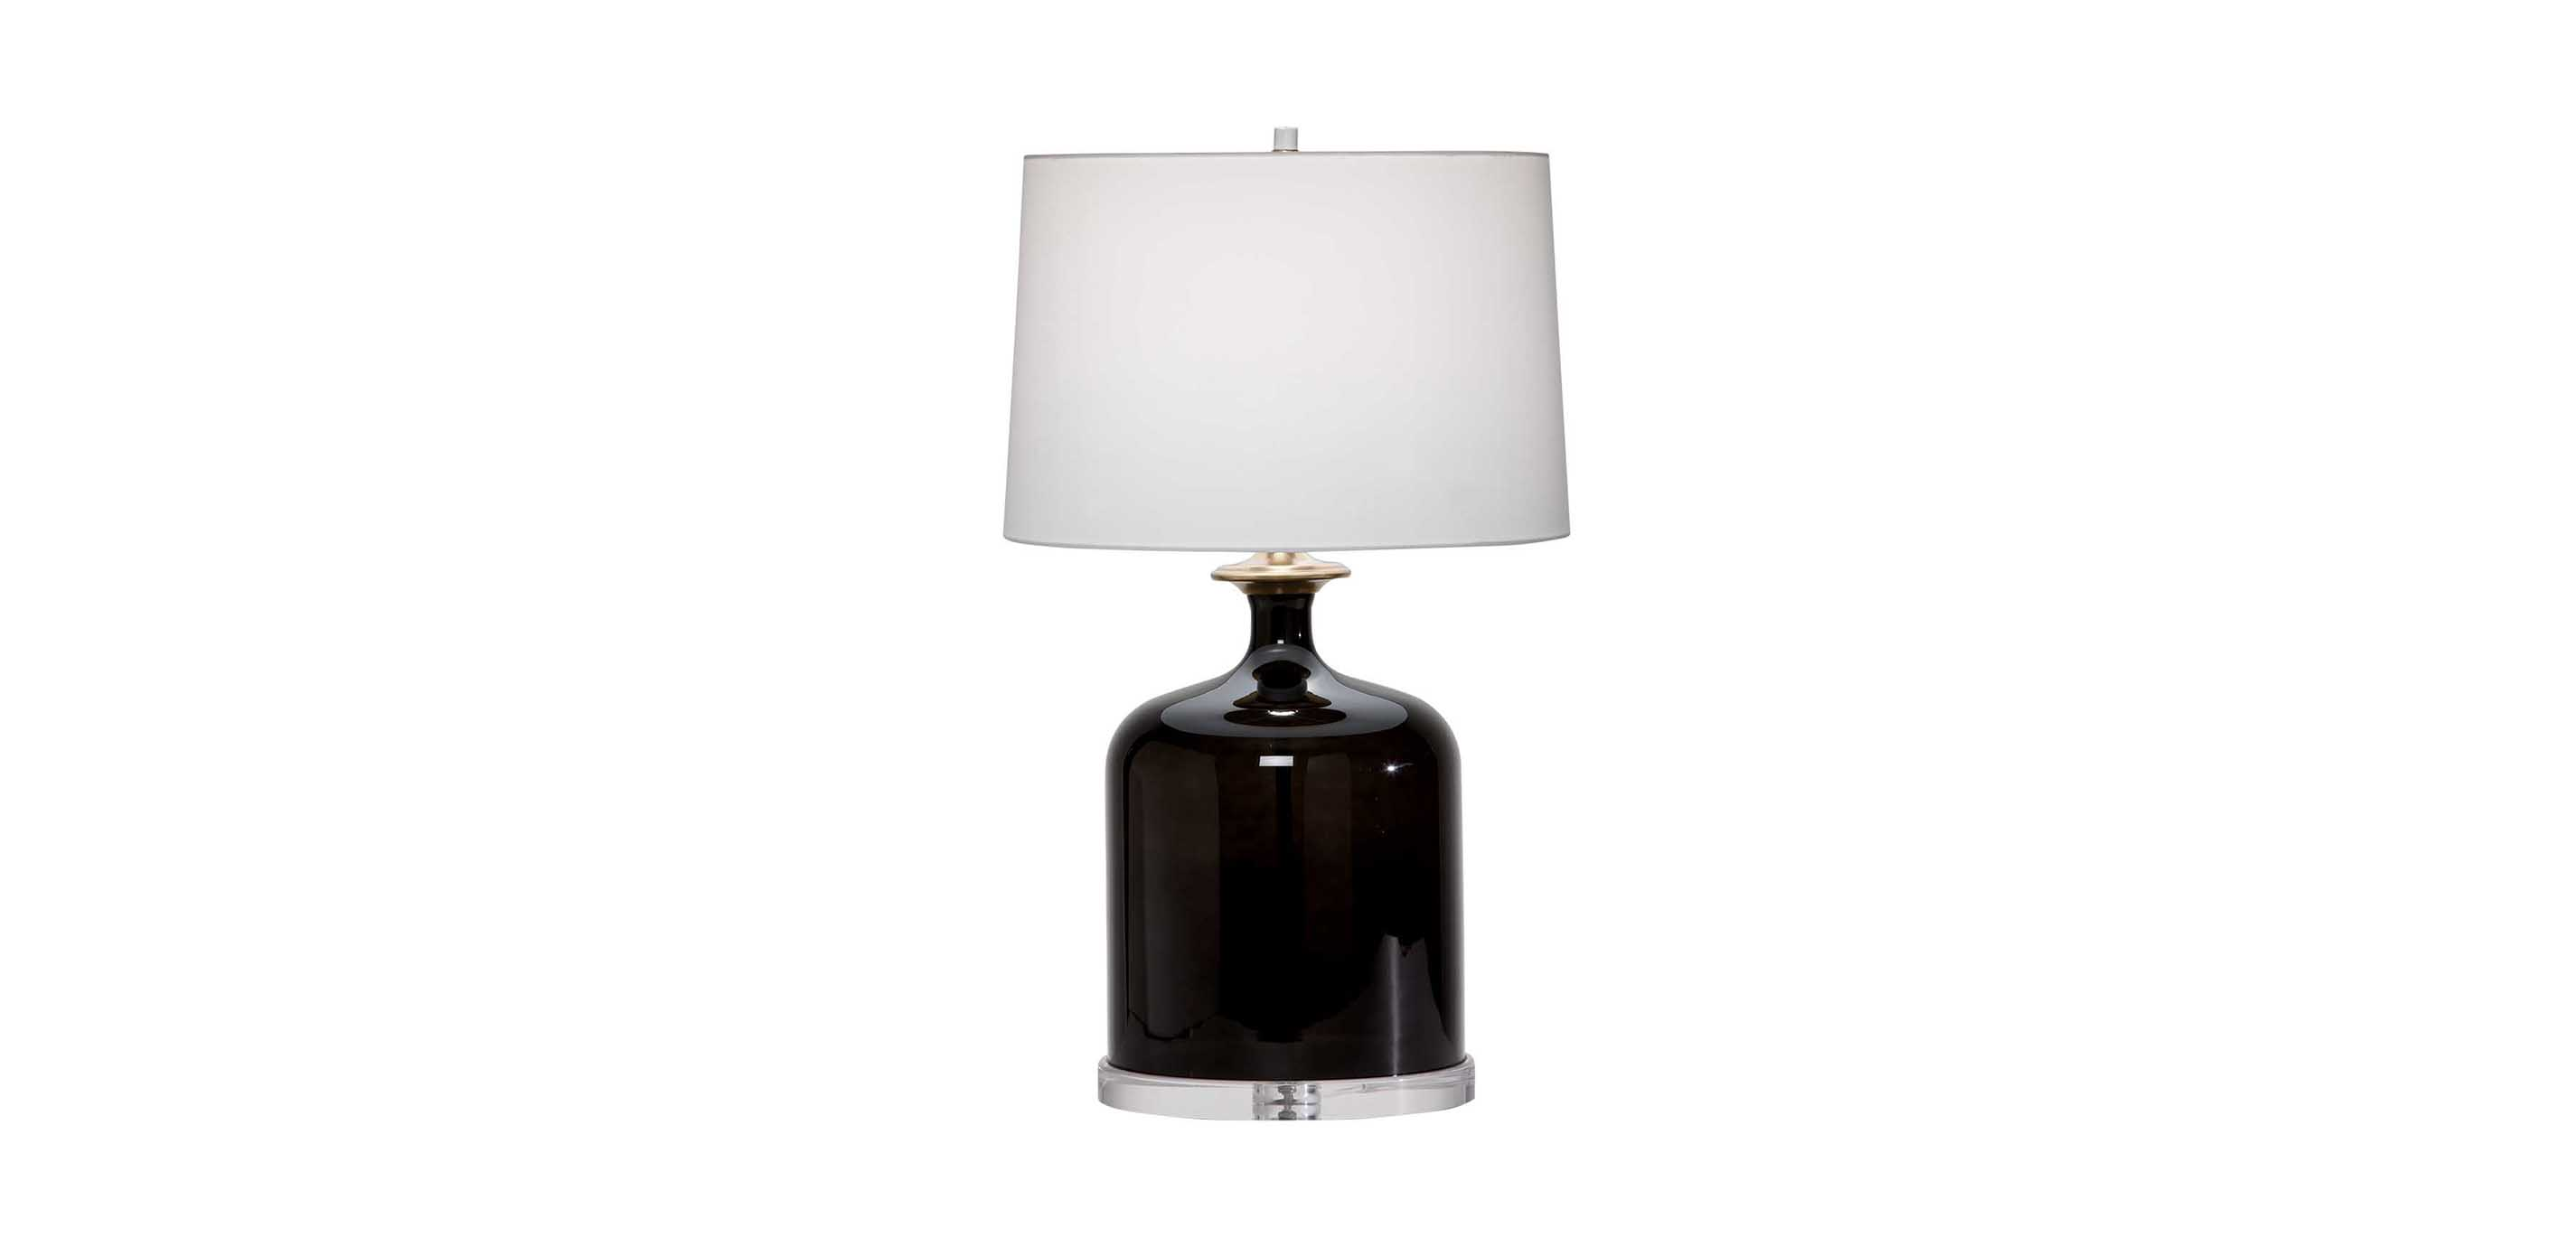 Nolan table lamp table lamps ethan allen images null aloadofball Gallery